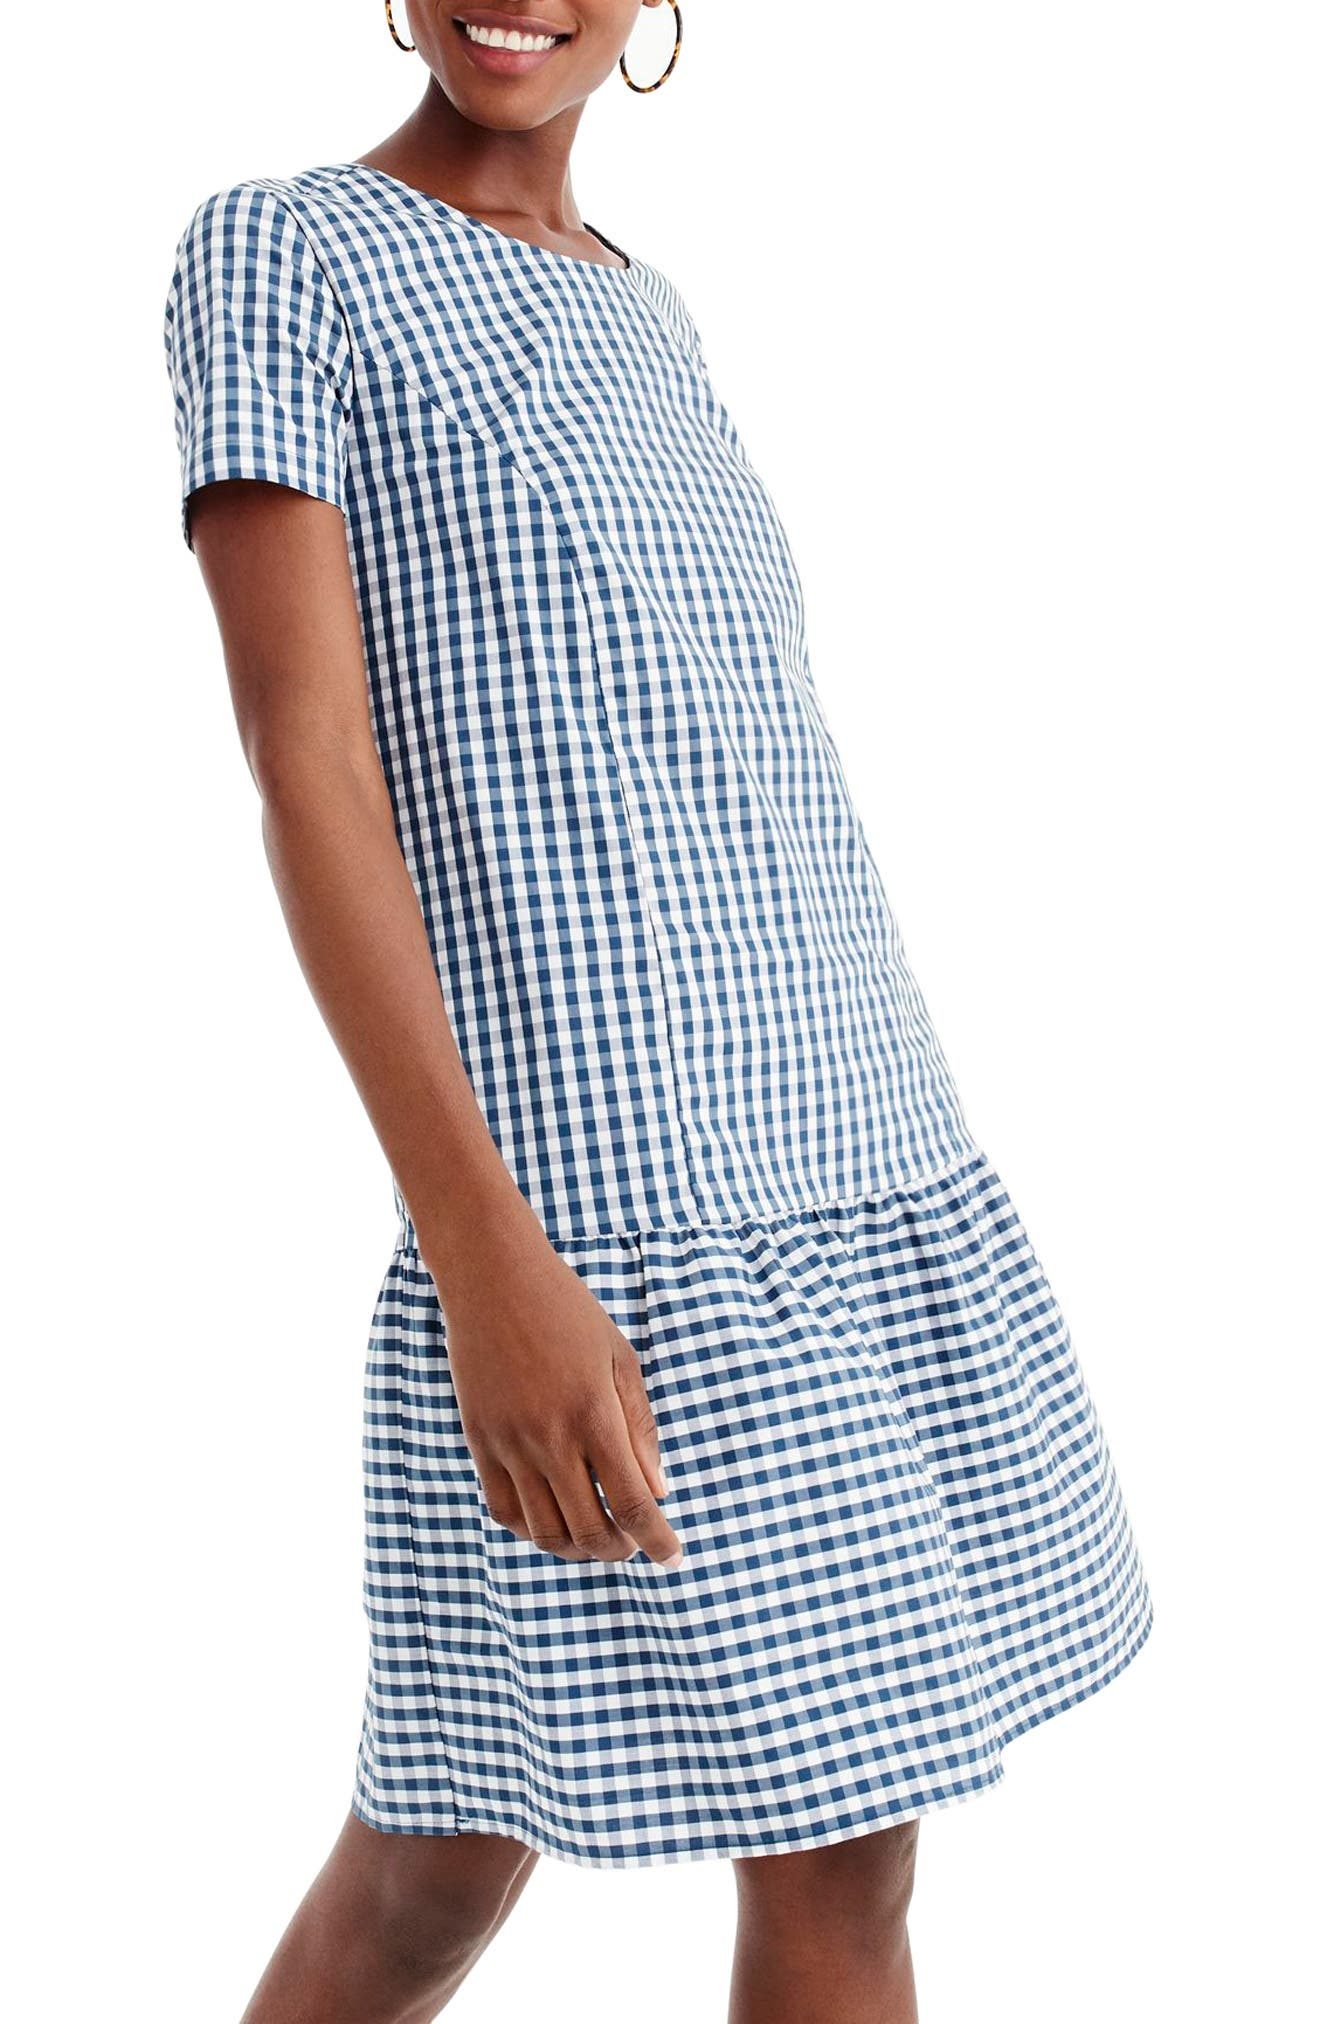 Universal Standard For J.crew Drop Waist Poplin Dress